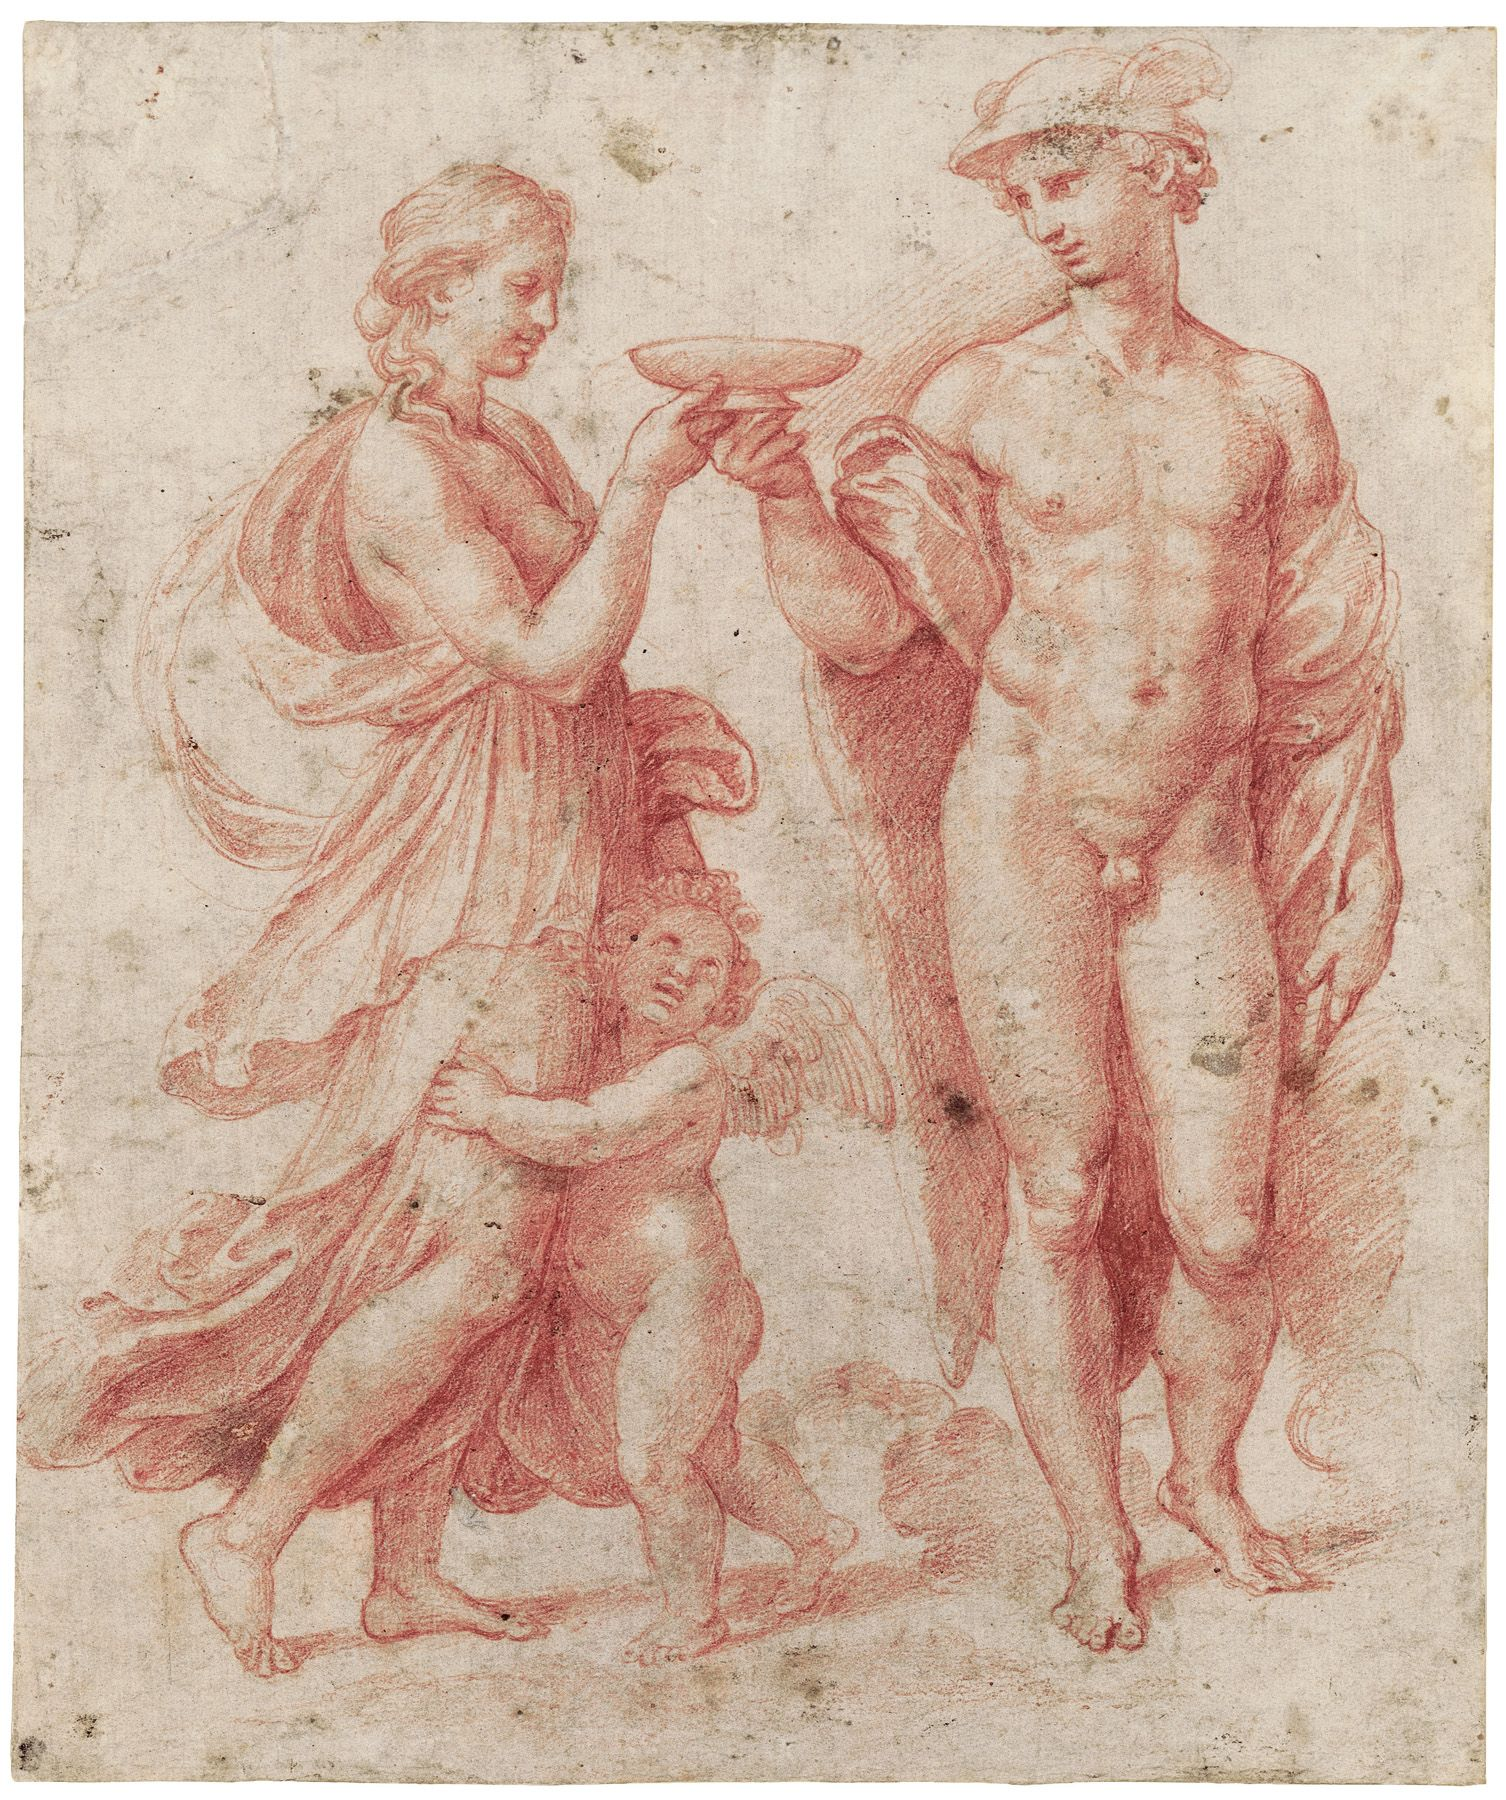 Pin by dominique dario on dessins et gravures pinterest - Raphael dessin ...